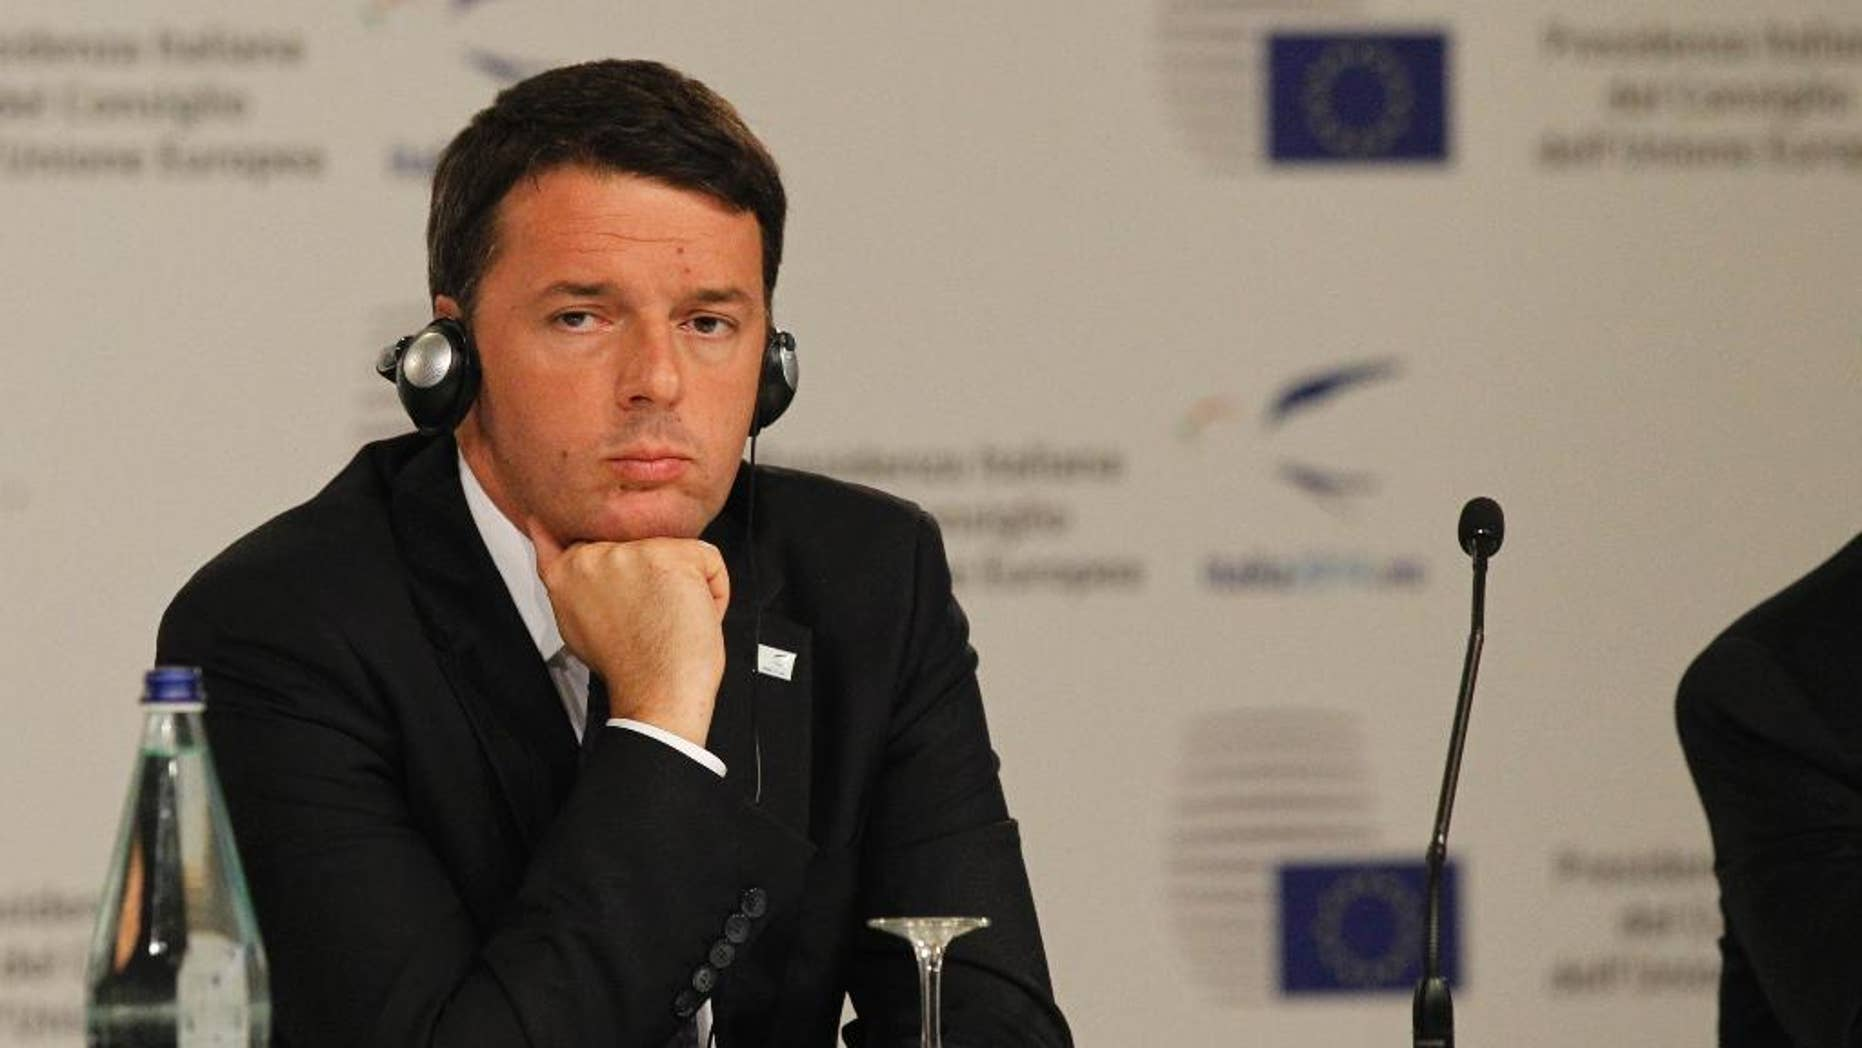 Italian Premier Matteo Renzi listens during a press conference at the EU jobs summit in Milan, Italy, Wednesday, Oct. 8, 2014. European leaders have debated ways to find work for the continent's 25 million unemployed at a summit Wednesday, as popular frustration grows at authorities' failure to return the continent's economy to health. Several thousand union activists protested outside the venue, demanding a stop to government spending austerity policies and calling for reforms to encourage investment. (AP Photo/Felice Calabro')